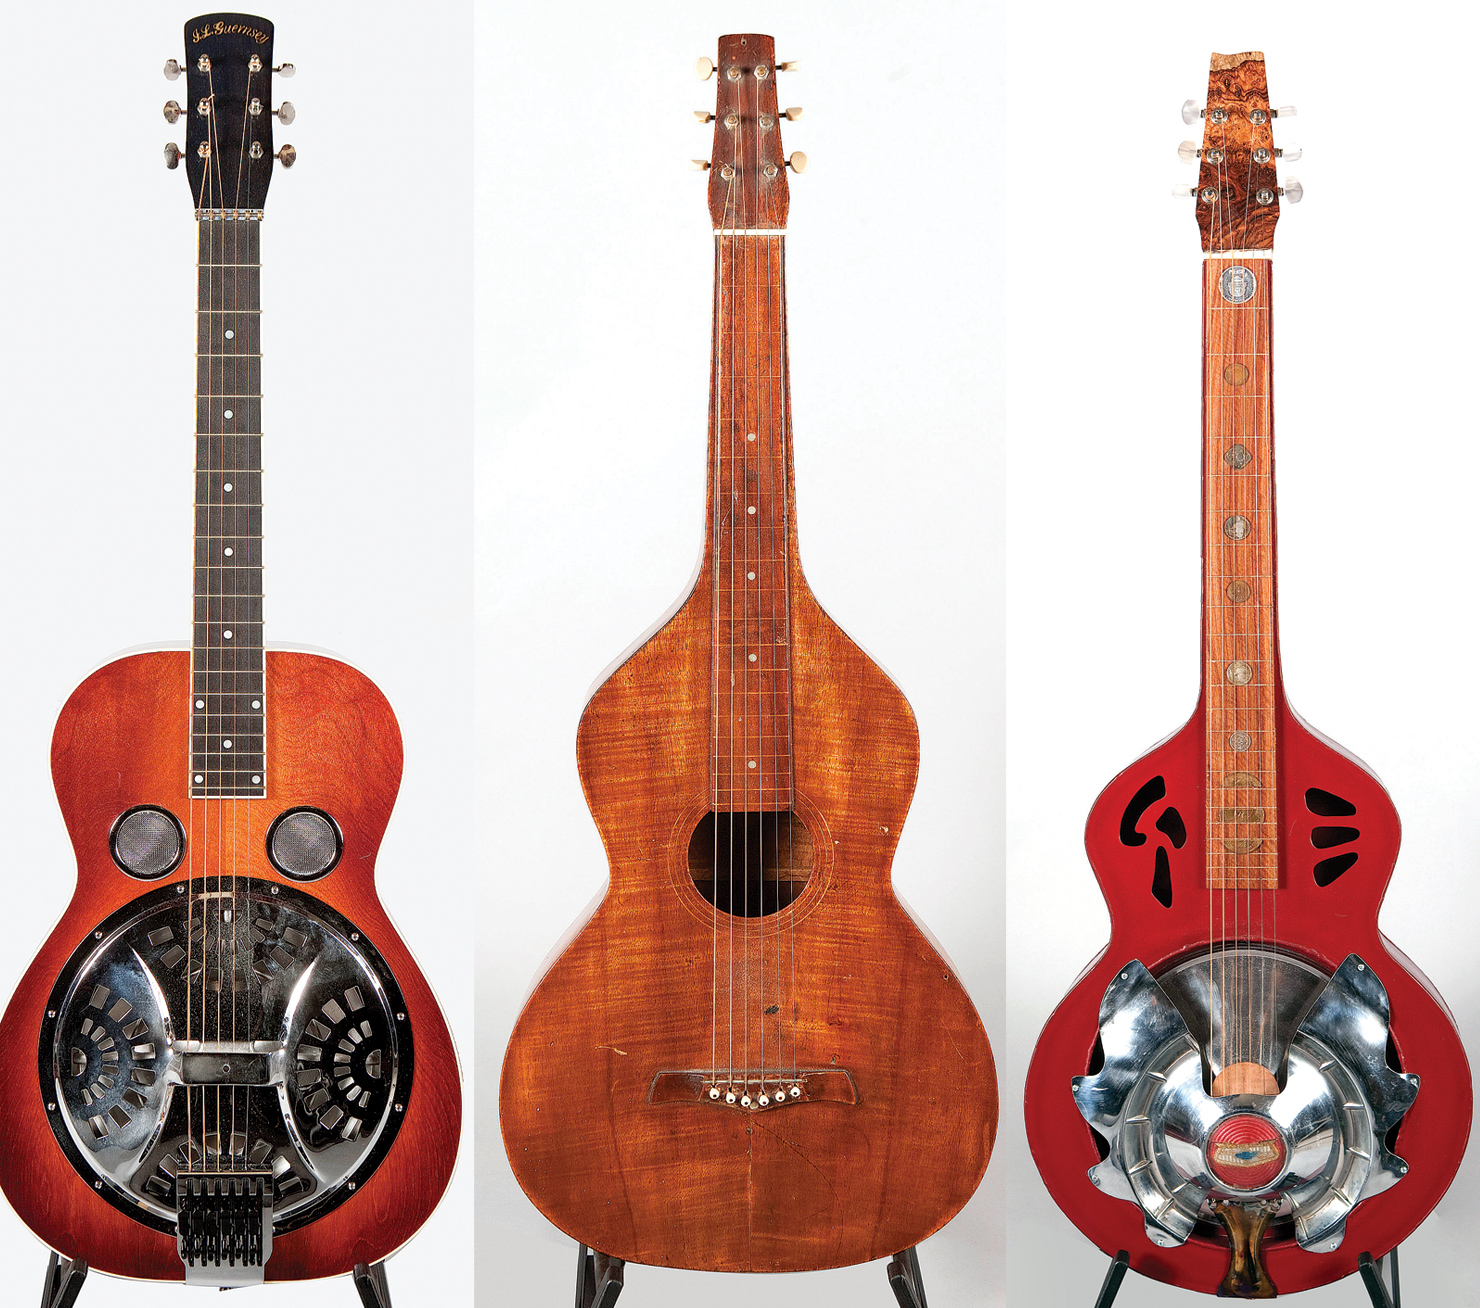 "(LEFT TO RIGHT) This Ivan Guernsey resonator is fitted with a Guernsey's Hipshot tailpiece that works like a B-bender on multiple strings. Douglas found this 1919 Weissenborn being used as a planter at his in-laws' home. ""They're works of folk art, but this guitar actually sounds amazing,"" Douglas said of this Larry Pogreba custom, which has a resonator cover fashioned from a vintage Chevy hubcap and inlays from an Elvis medallion and other old coins (RIGHT). ""It's hollow all the way up to the nut, like a Weissenborn."" It's the first thing listeners hear on Traveler and it is used extensively throughout the album."